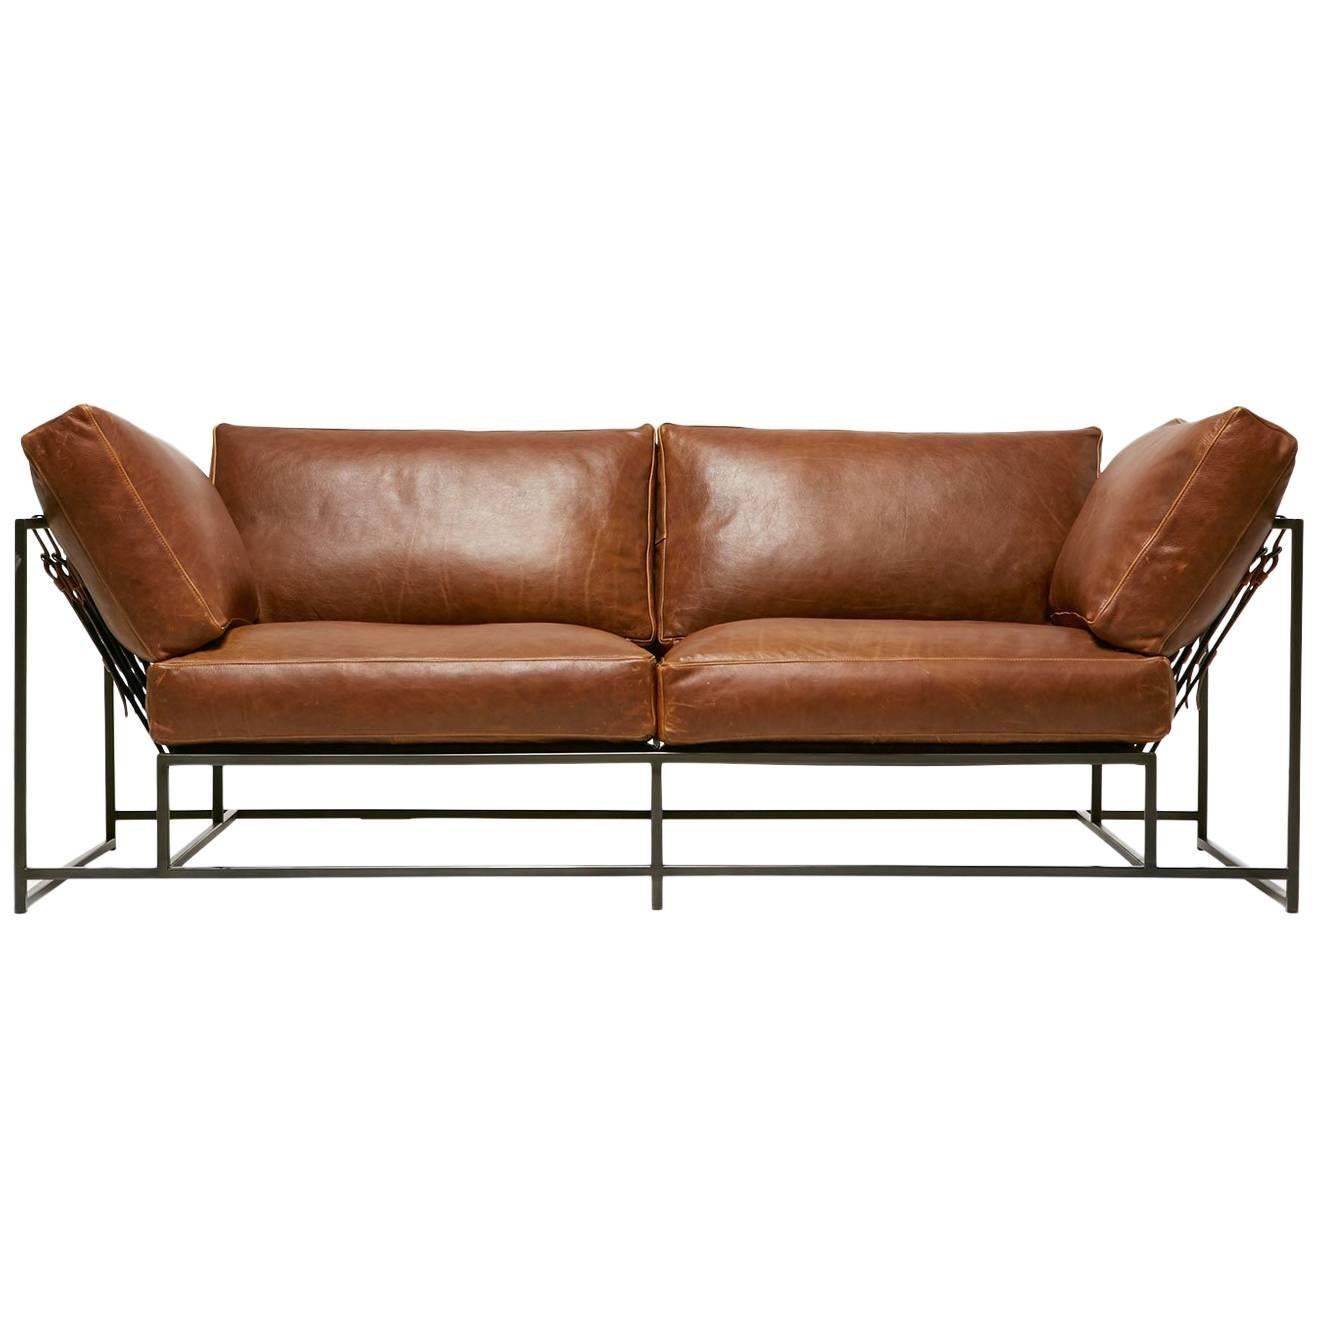 Potomac Leather and Blackened Steel Two-Seat Sofa